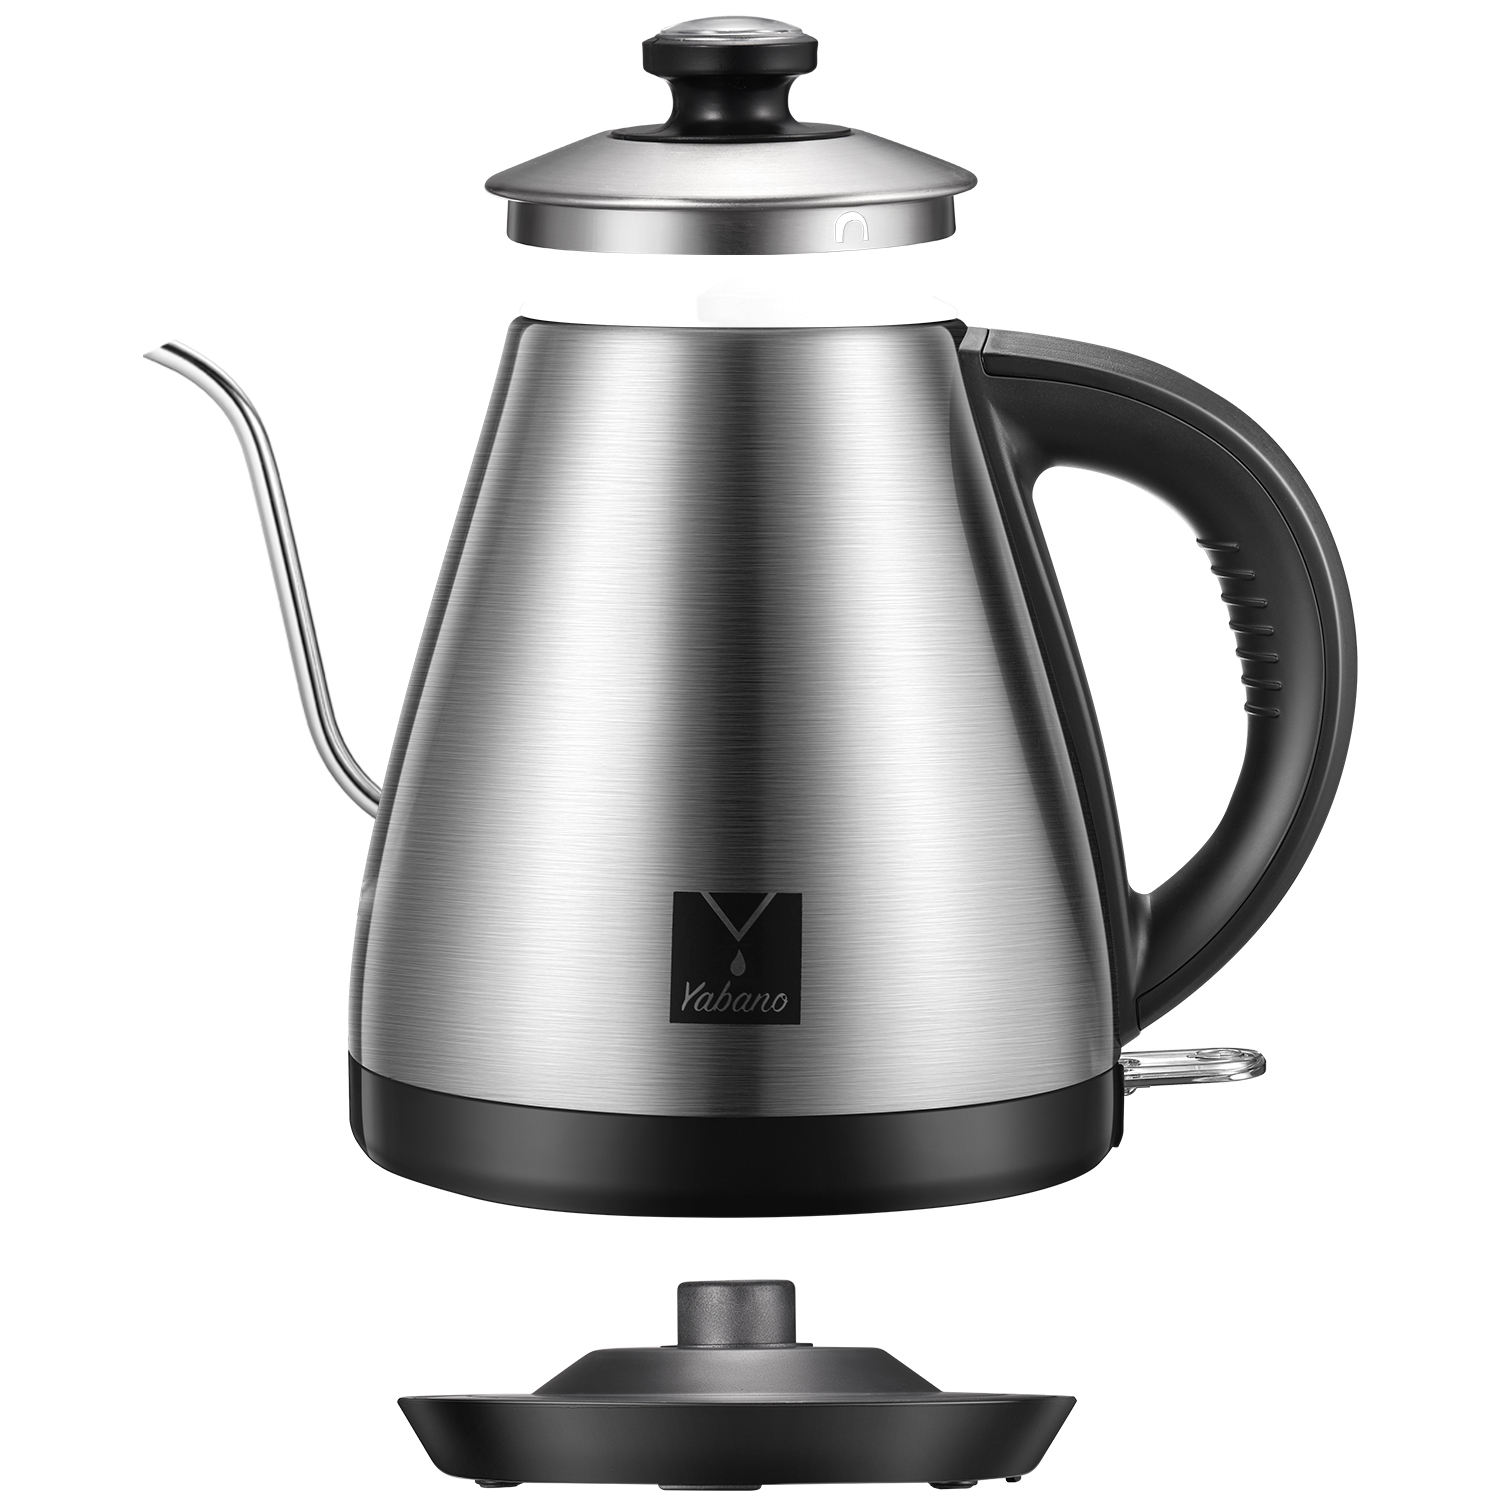 2021 Latest Design Glass Kettle Electric Etl Certificated The Commercial Electric Kettle